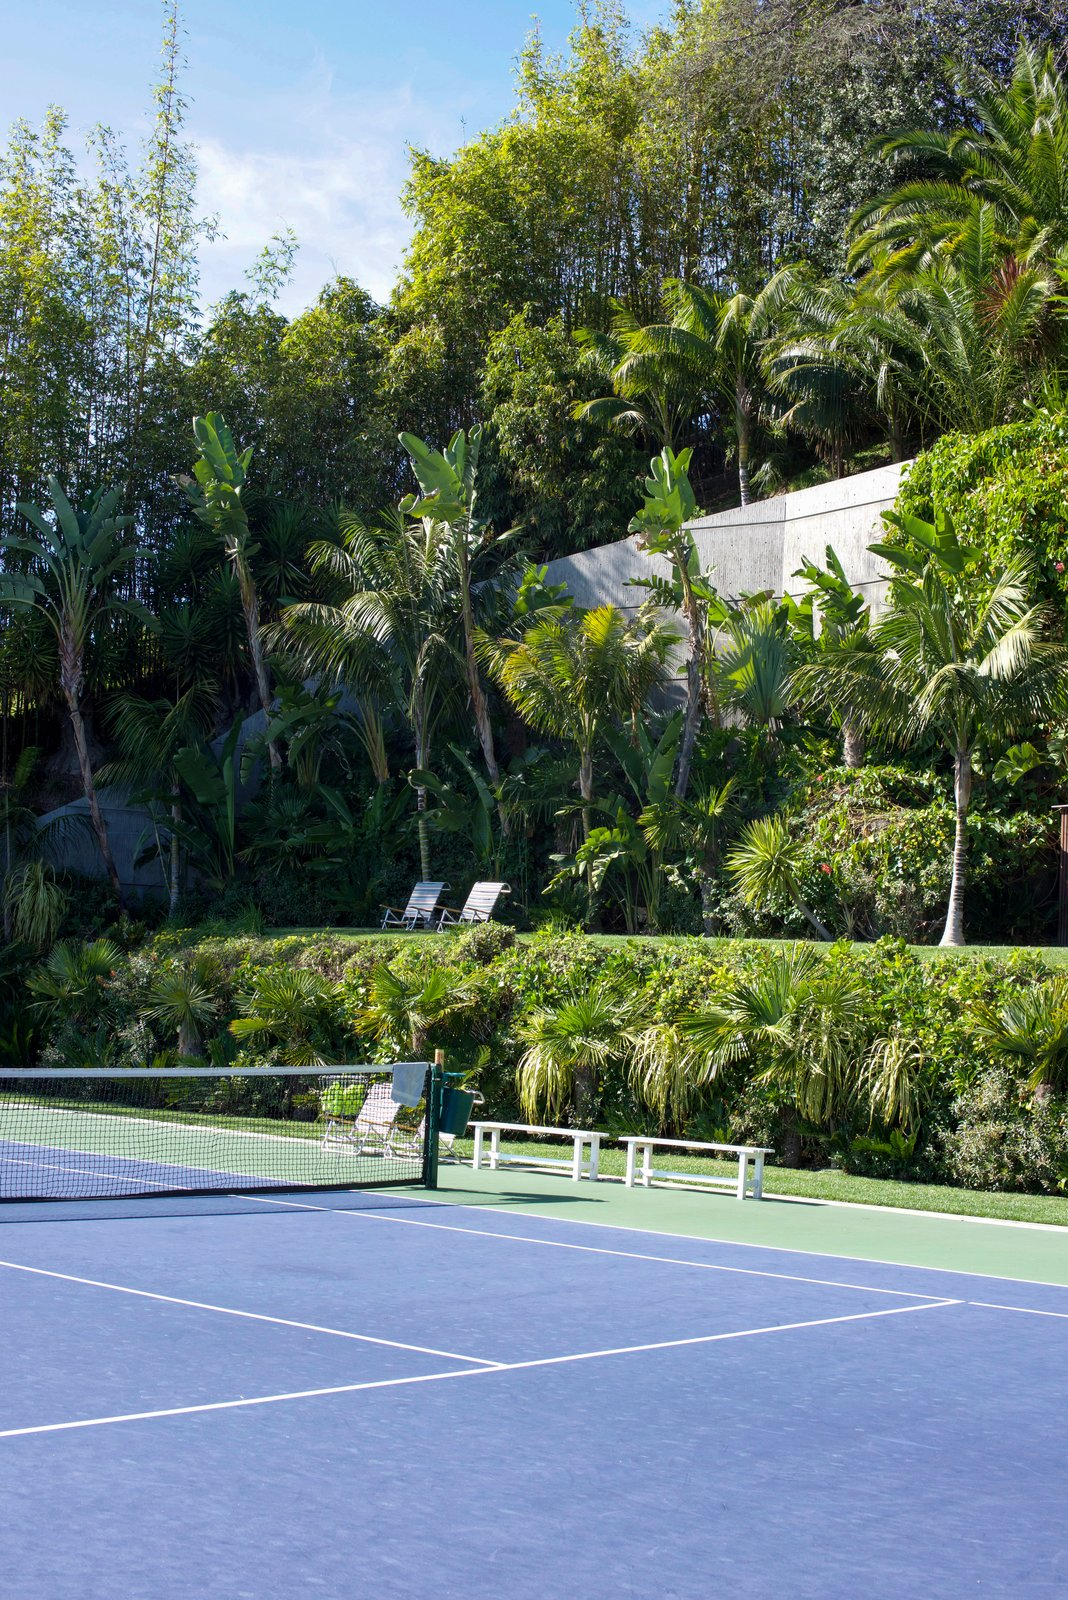 The colossal yard includes LA's only infinity tennis court and looks out to astonishing views.